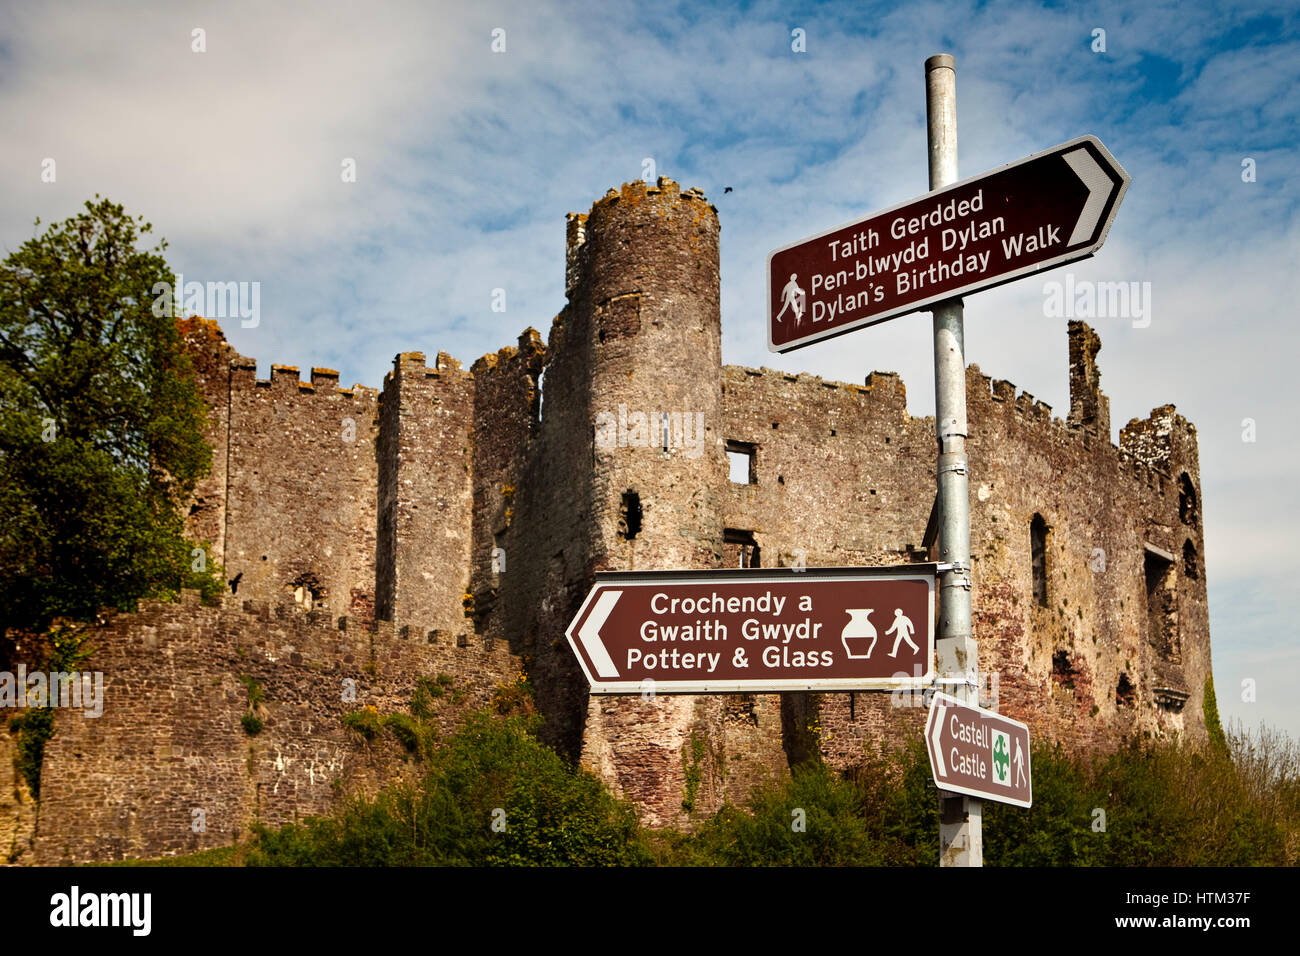 Laugharne Castle, Laugharne, Carmarthenshire, Wales, Great Britain - Stock Image